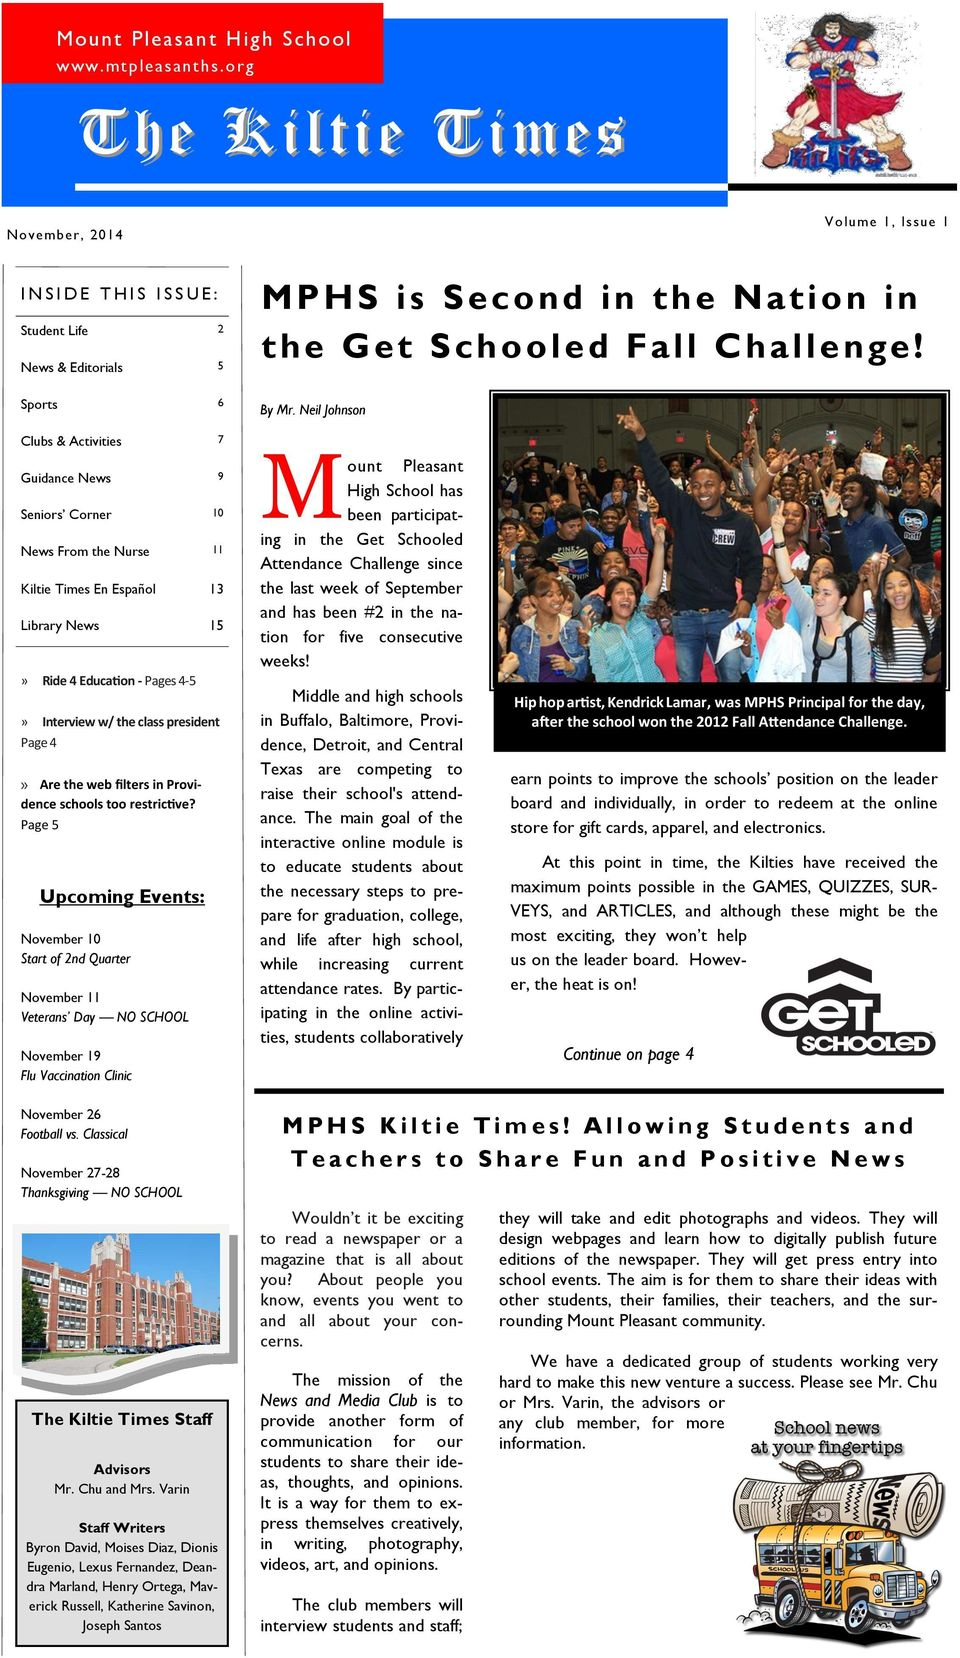 Clubs & Activities 7 Guidance News 9 Seniors Corner 10 News From the Nurse 11 Kiltie Times En Español 13 Library News 15» Ride 4 Education - Pages 4-5» Interview w/ the class president Page 4» Are